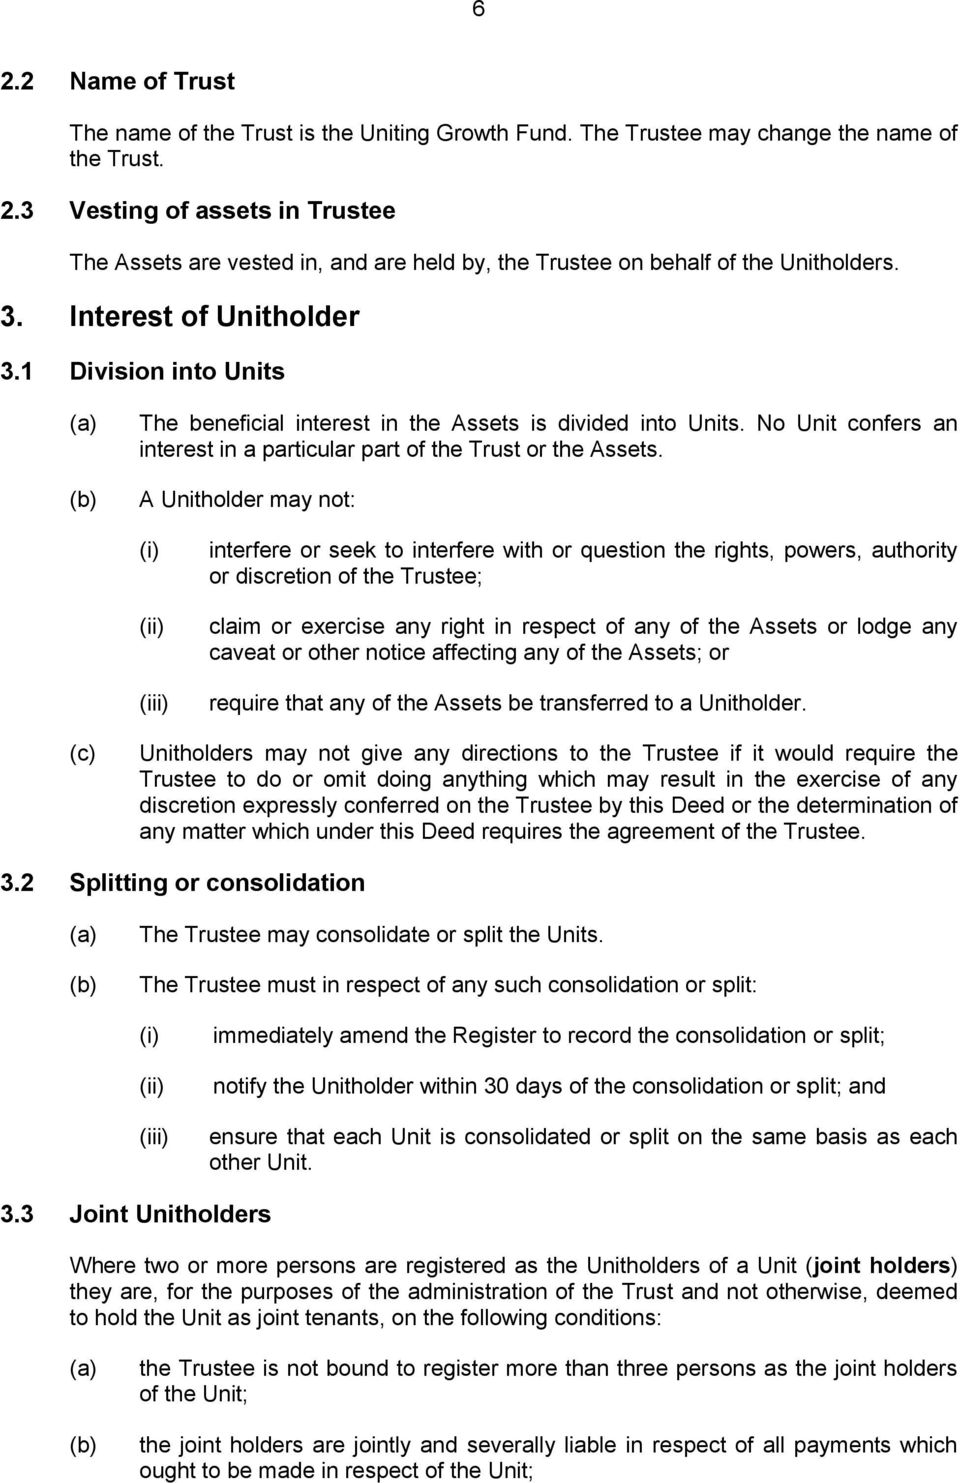 A Unitholder may not: (iii) interfere or seek to interfere with or question the rights, powers, authority or discretion of the Trustee; claim or exercise any right in respect of any of the Assets or